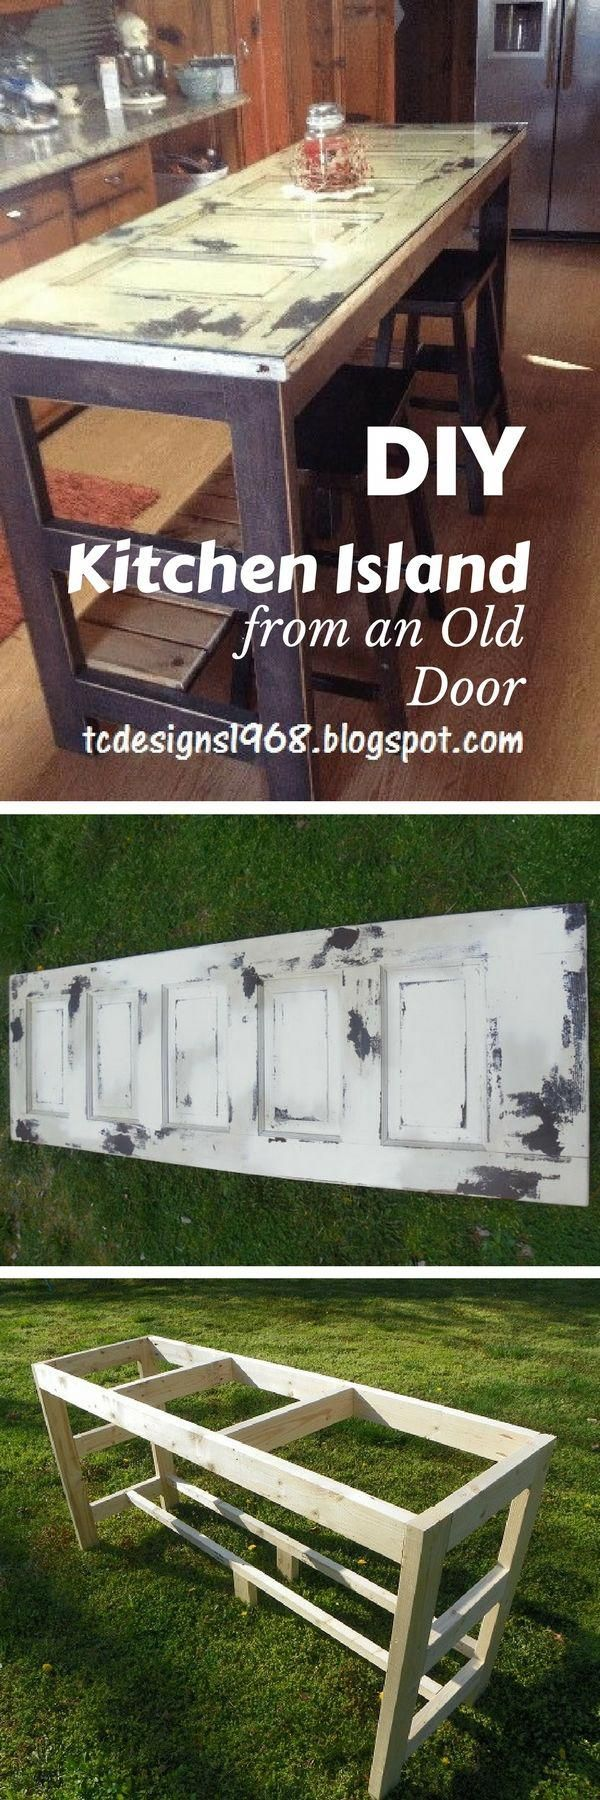 15 Easy DIY Kitchen Islands That You Can Build on a Budget - how to build a #DIY kitchen island from an old door #homedecor #diykitchencabinets